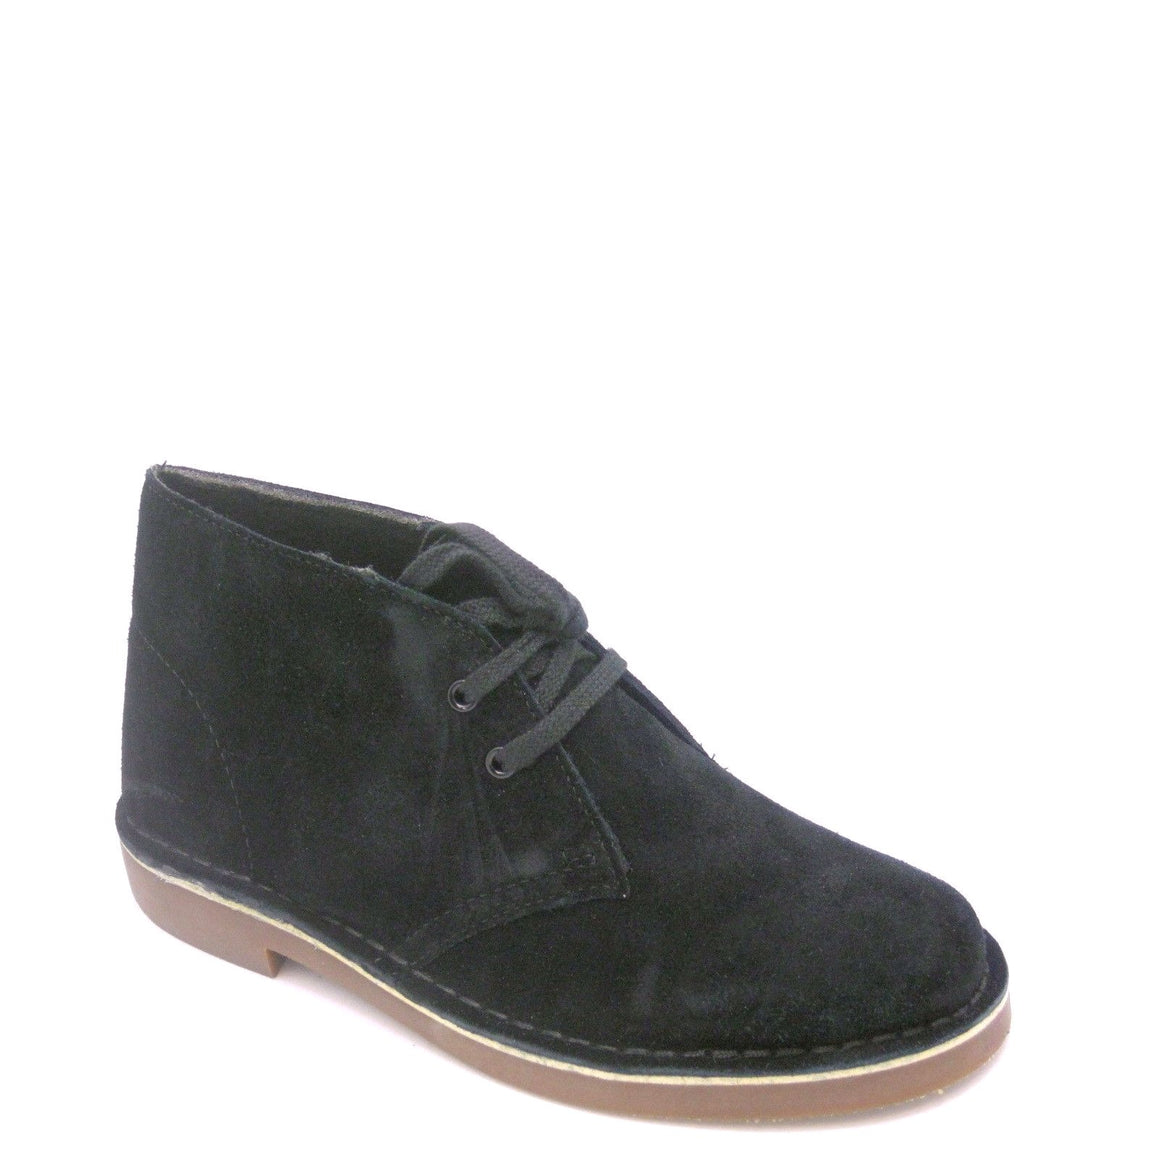 Clarks Women's Acre Bridge Suede Ankle Boot - Black 39851 - ShoeShackOnline